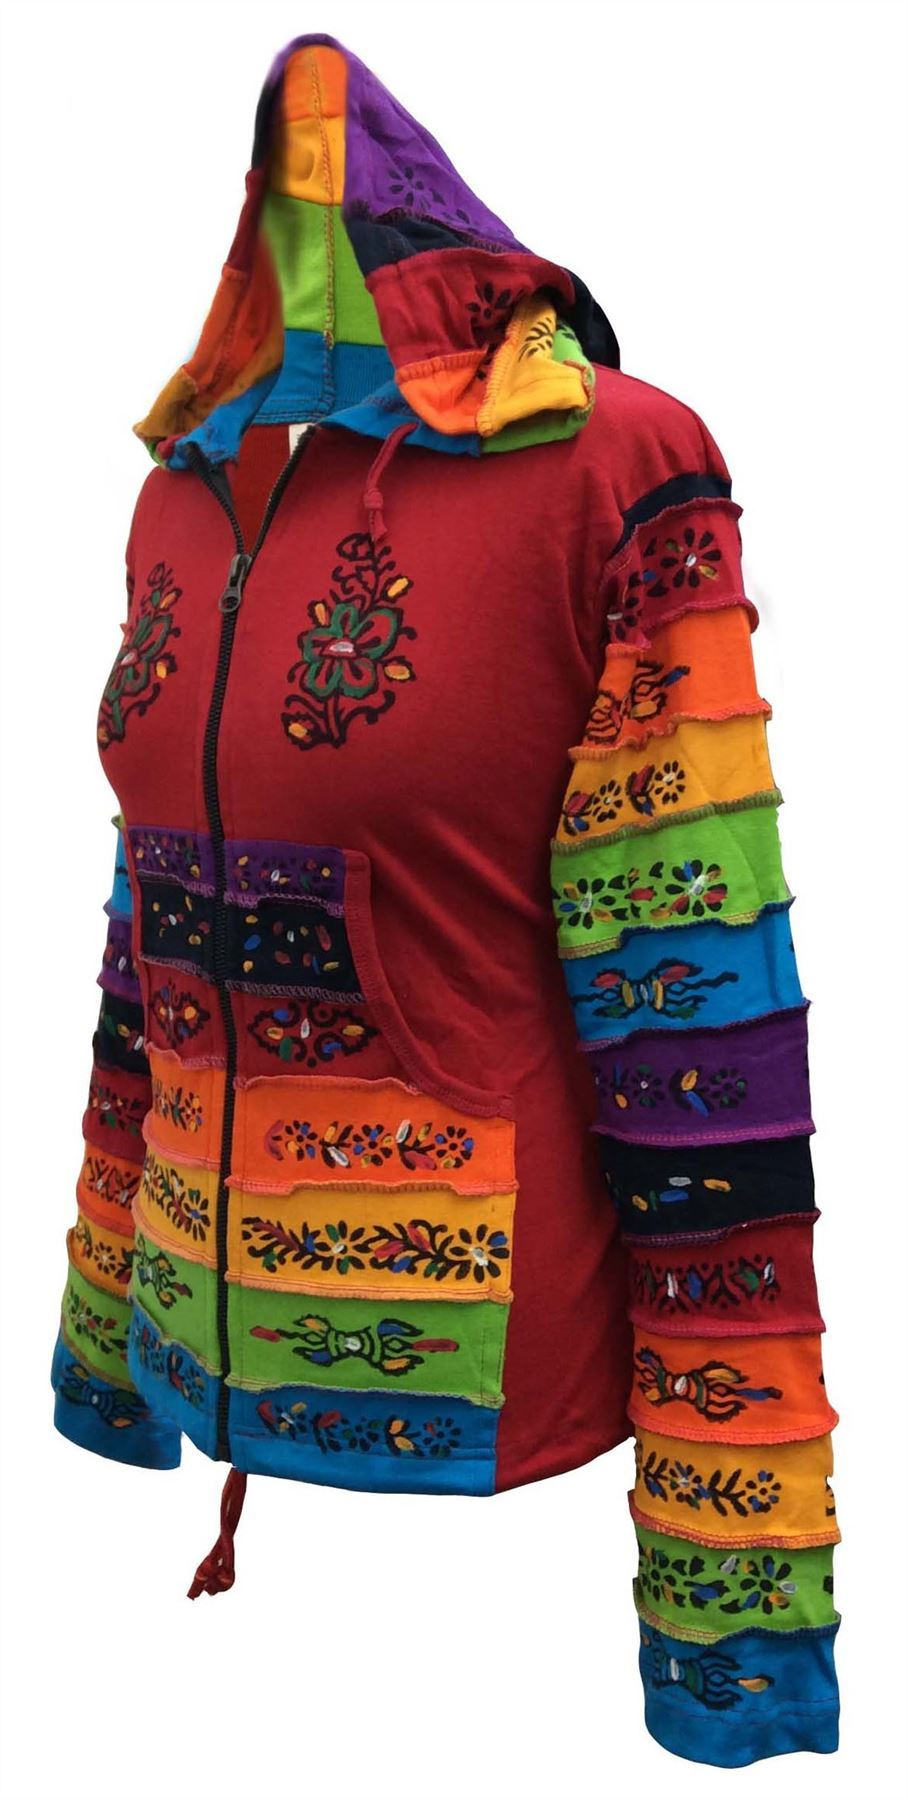 Women-Rainbow-Sleeved-Flower-Patch-Hoodie-Hippy-Light-Weight-Jacket thumbnail 15